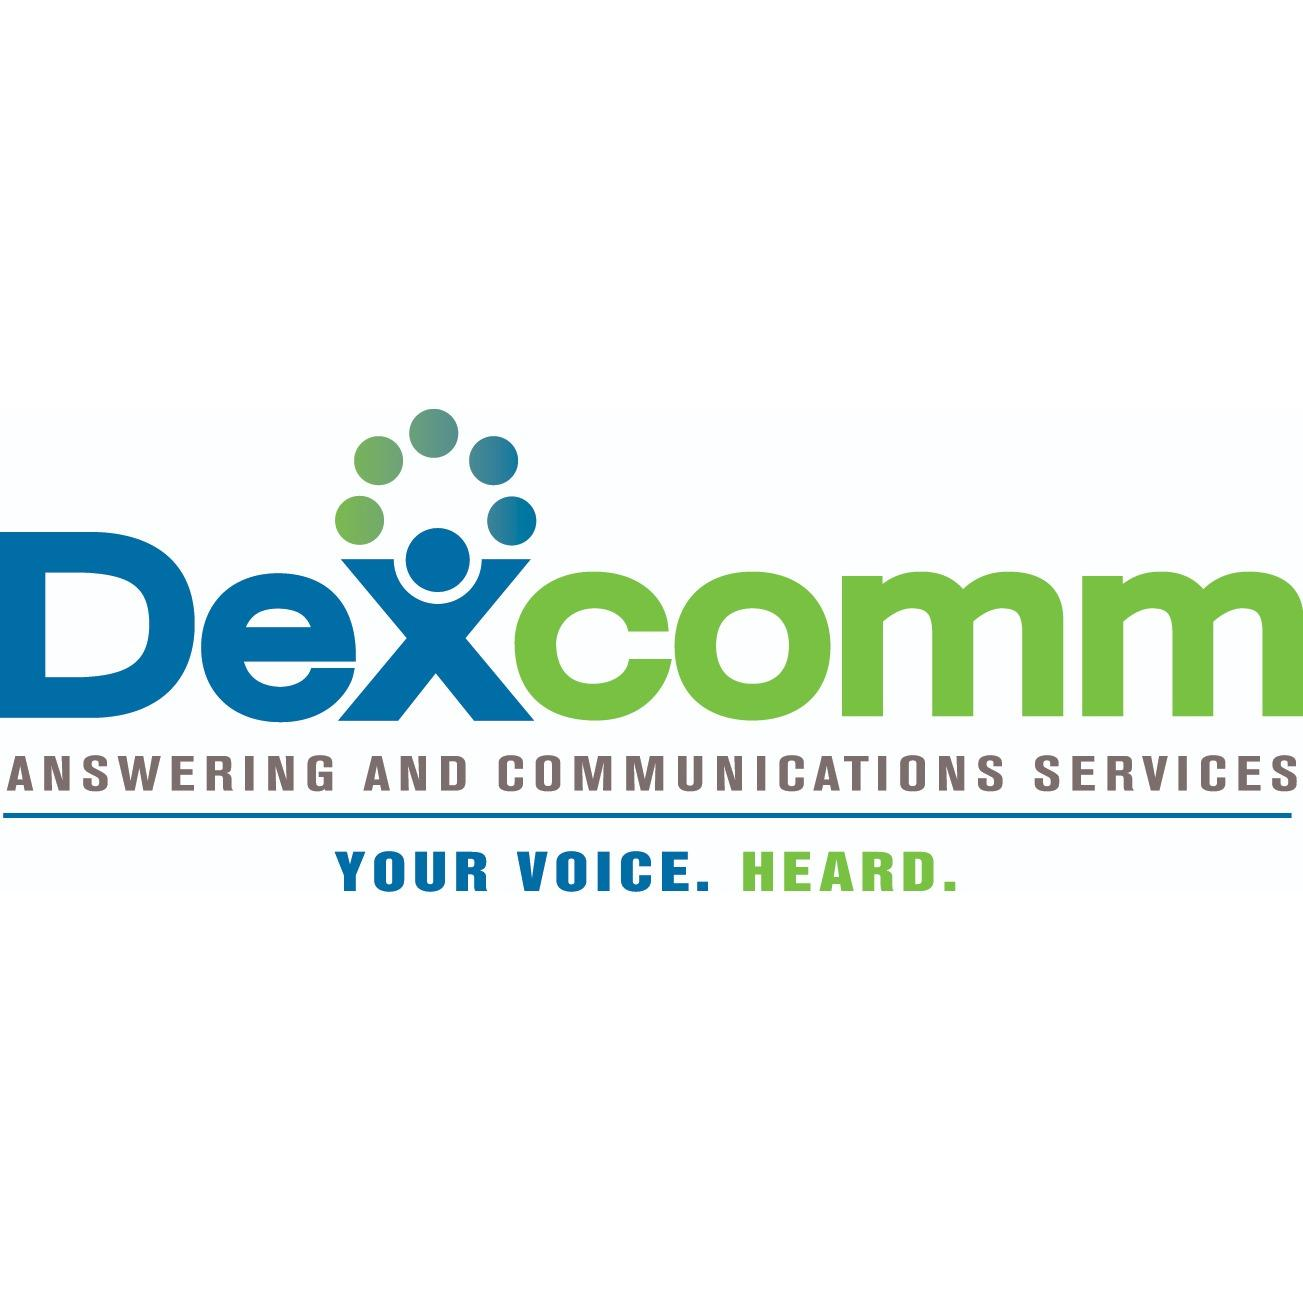 Dexcomm Answering and Communications Services